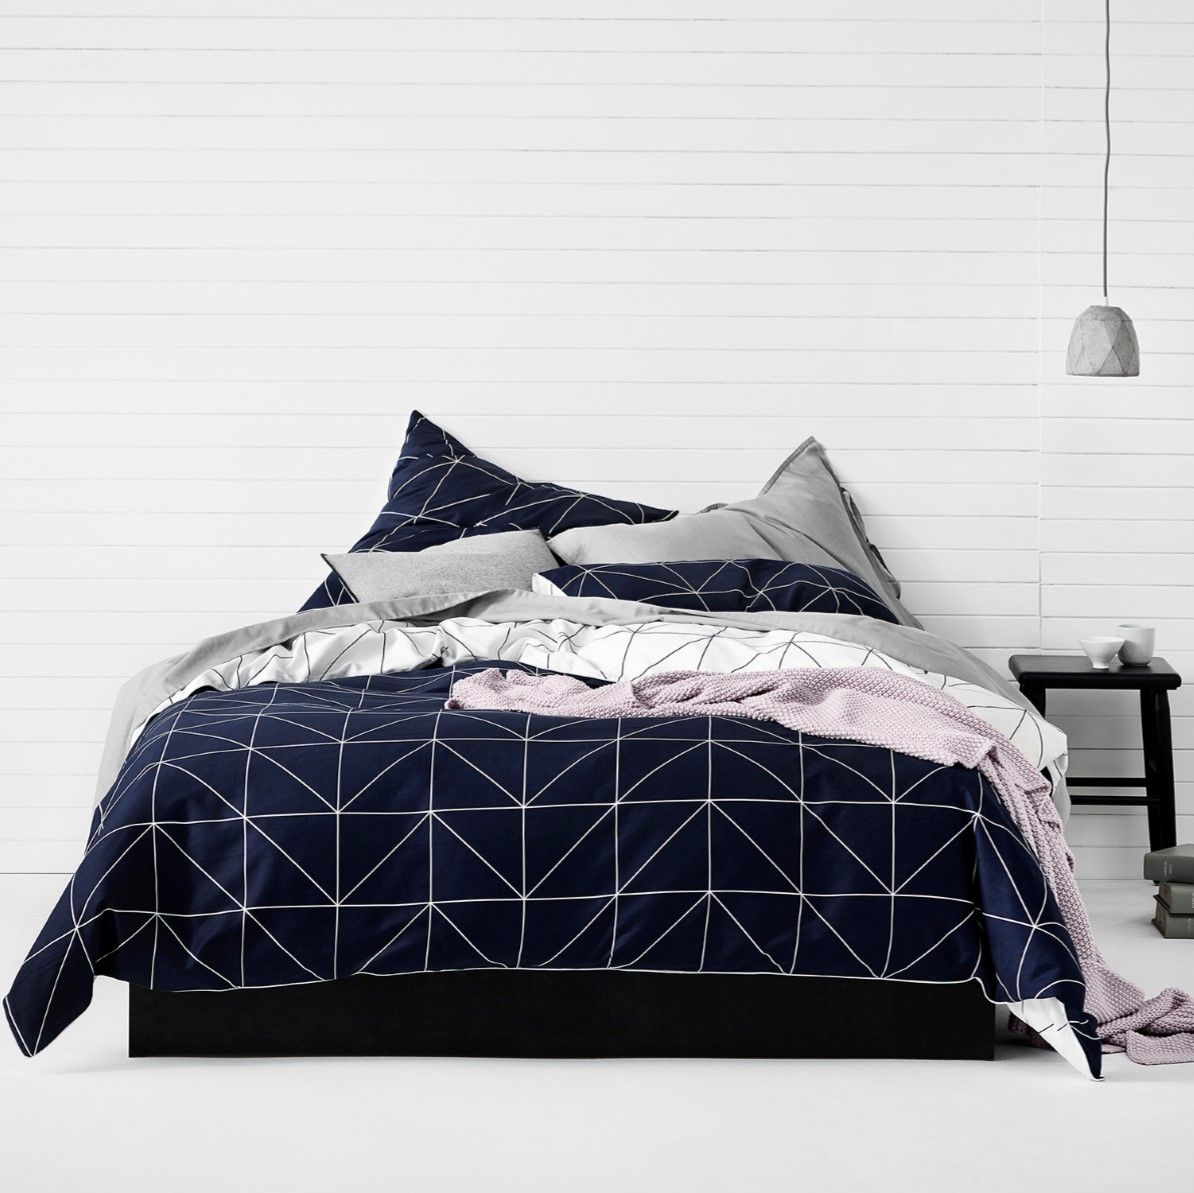 Bedroom Ideas Nz aura kami indigo duvet cover - nz super king - duvet covers